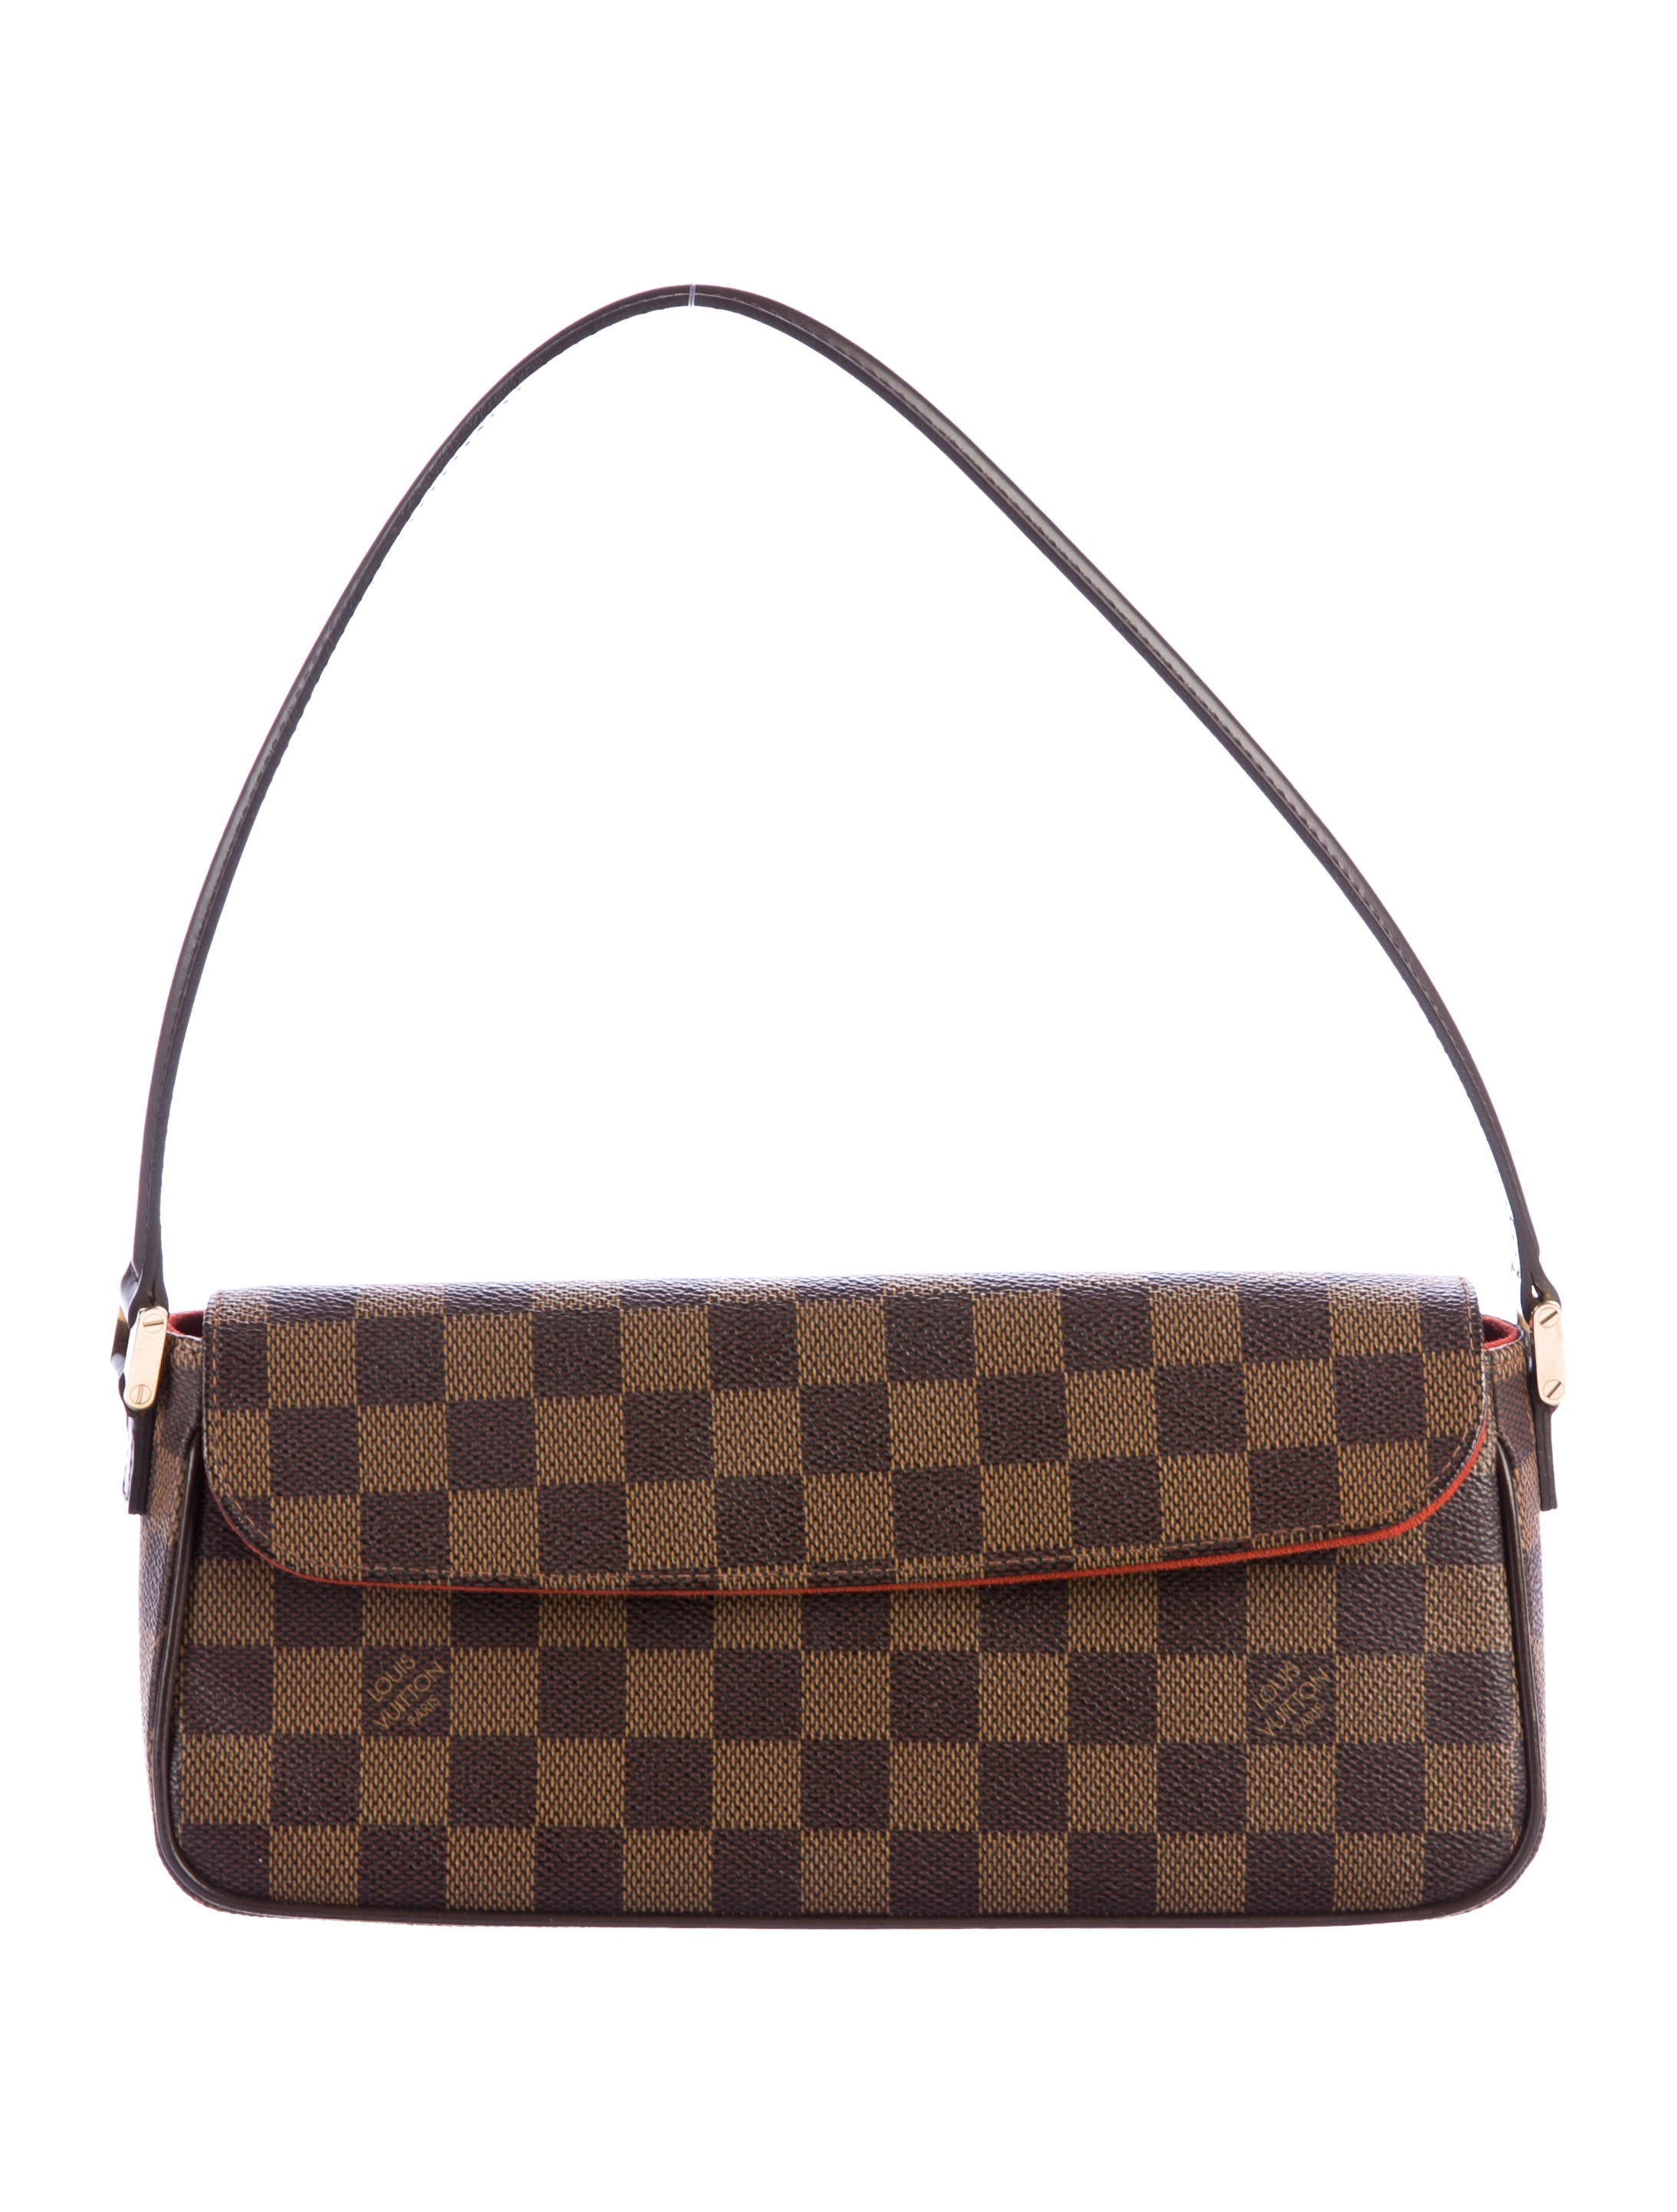 Louis vuitton damier ebene recoleta bag handbags for Louis vuitton miroir bags